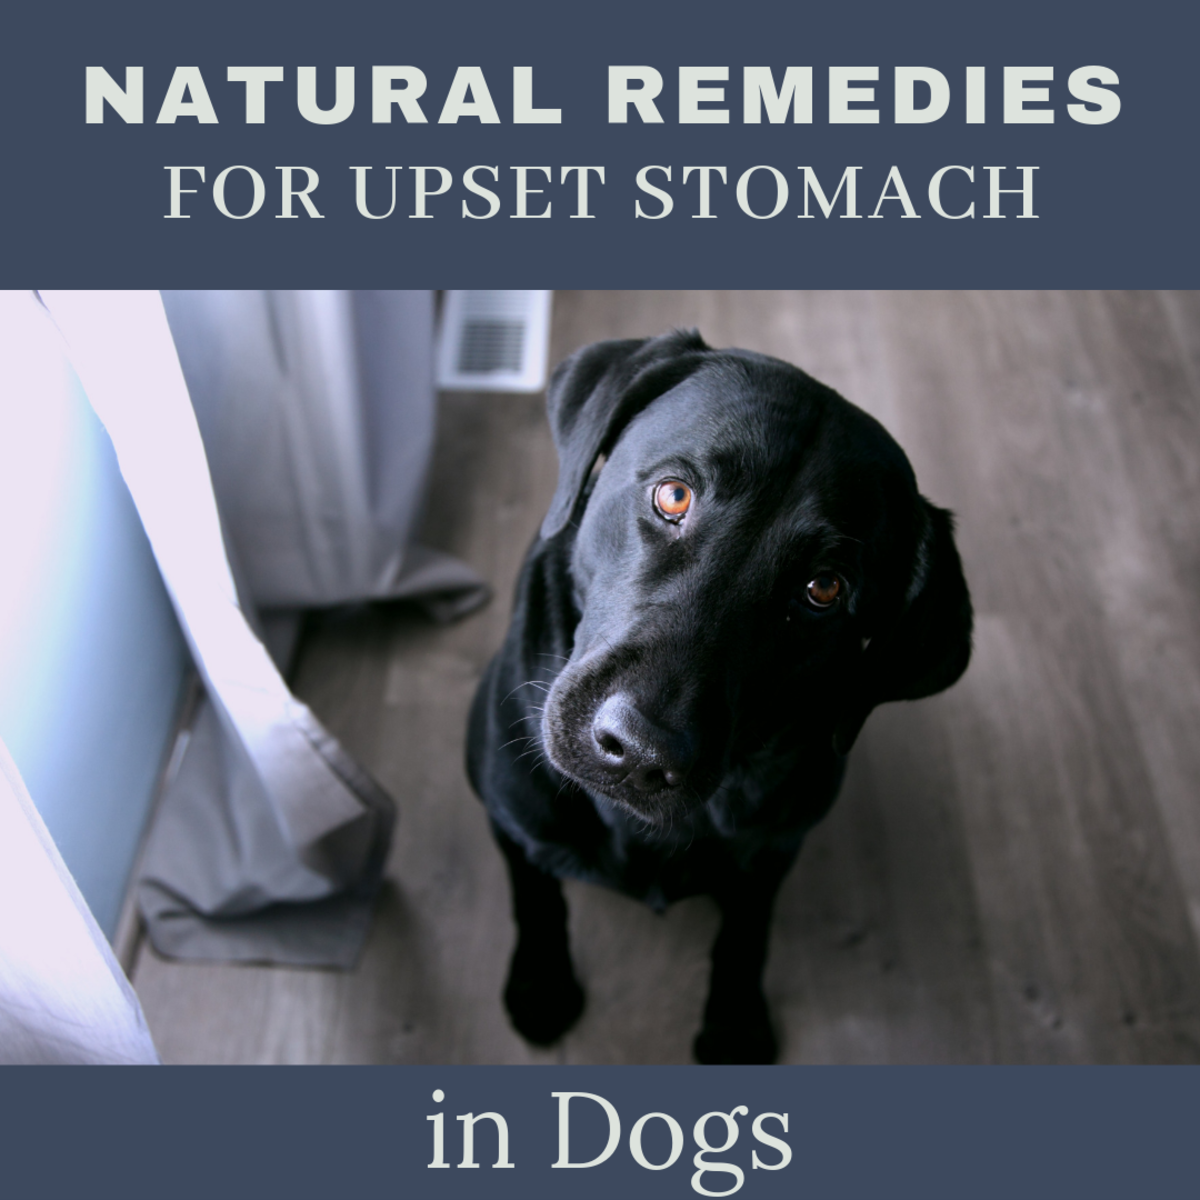 Natural Remedies for Dogs With GI Issues